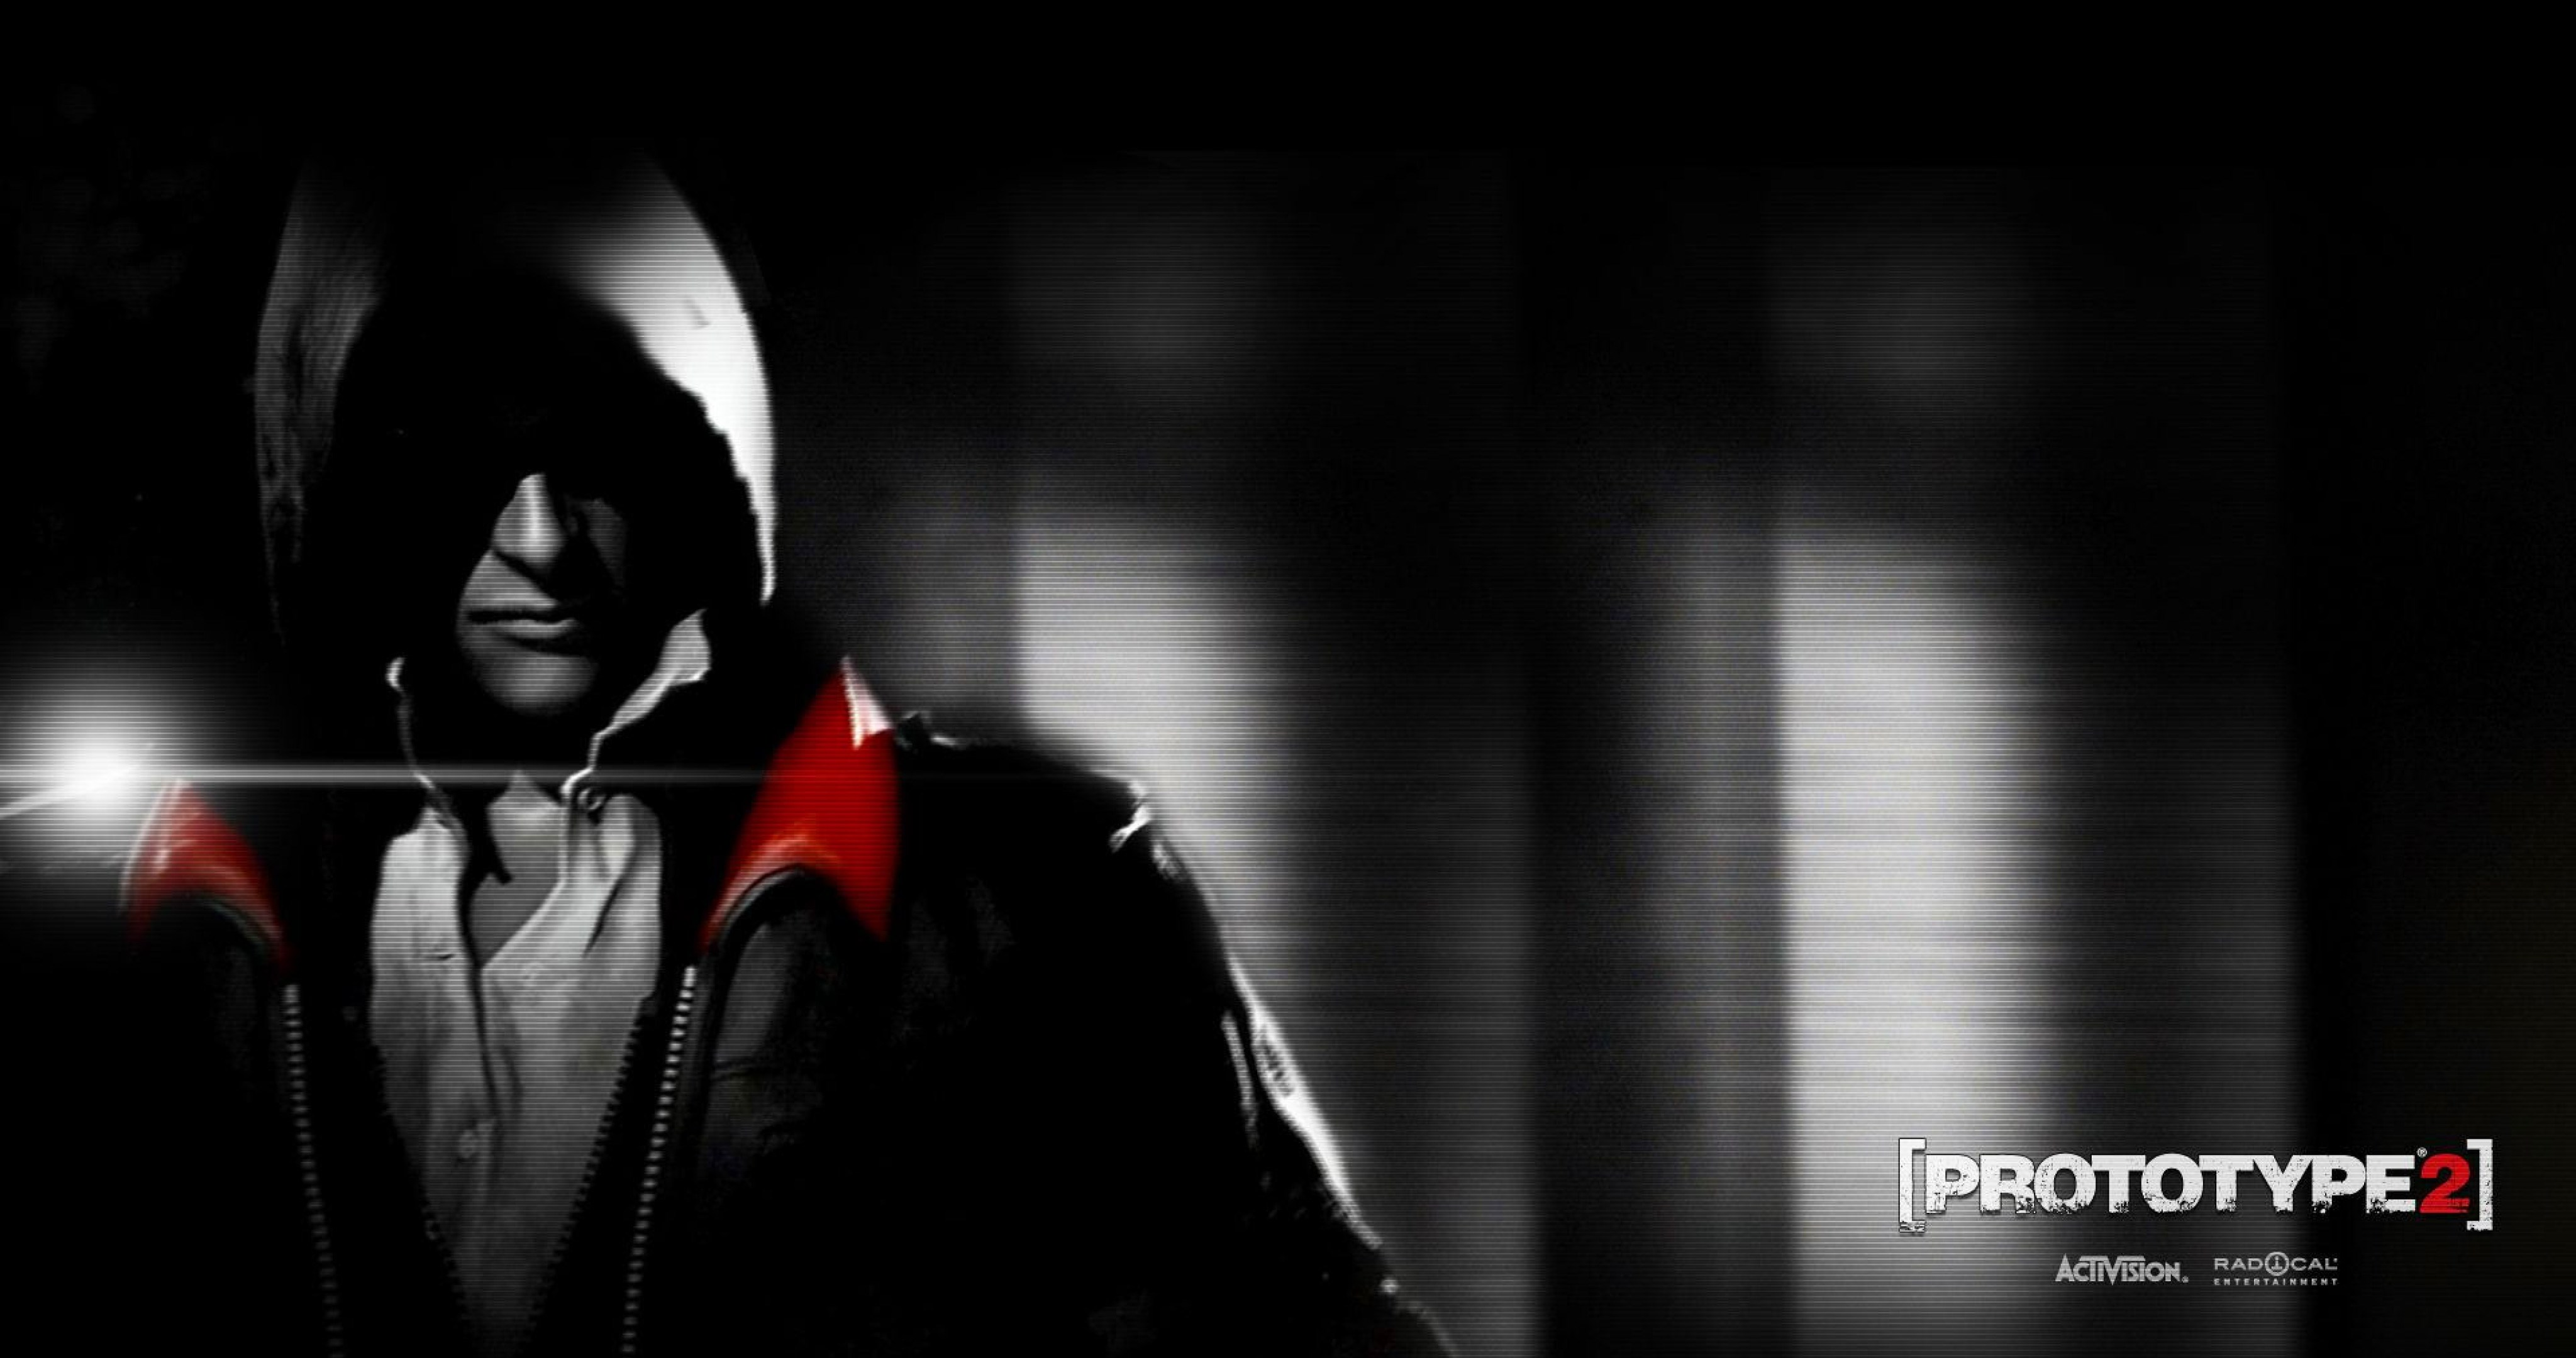 prototype 2 game 4k ultra hd wallpaper » high quality walls